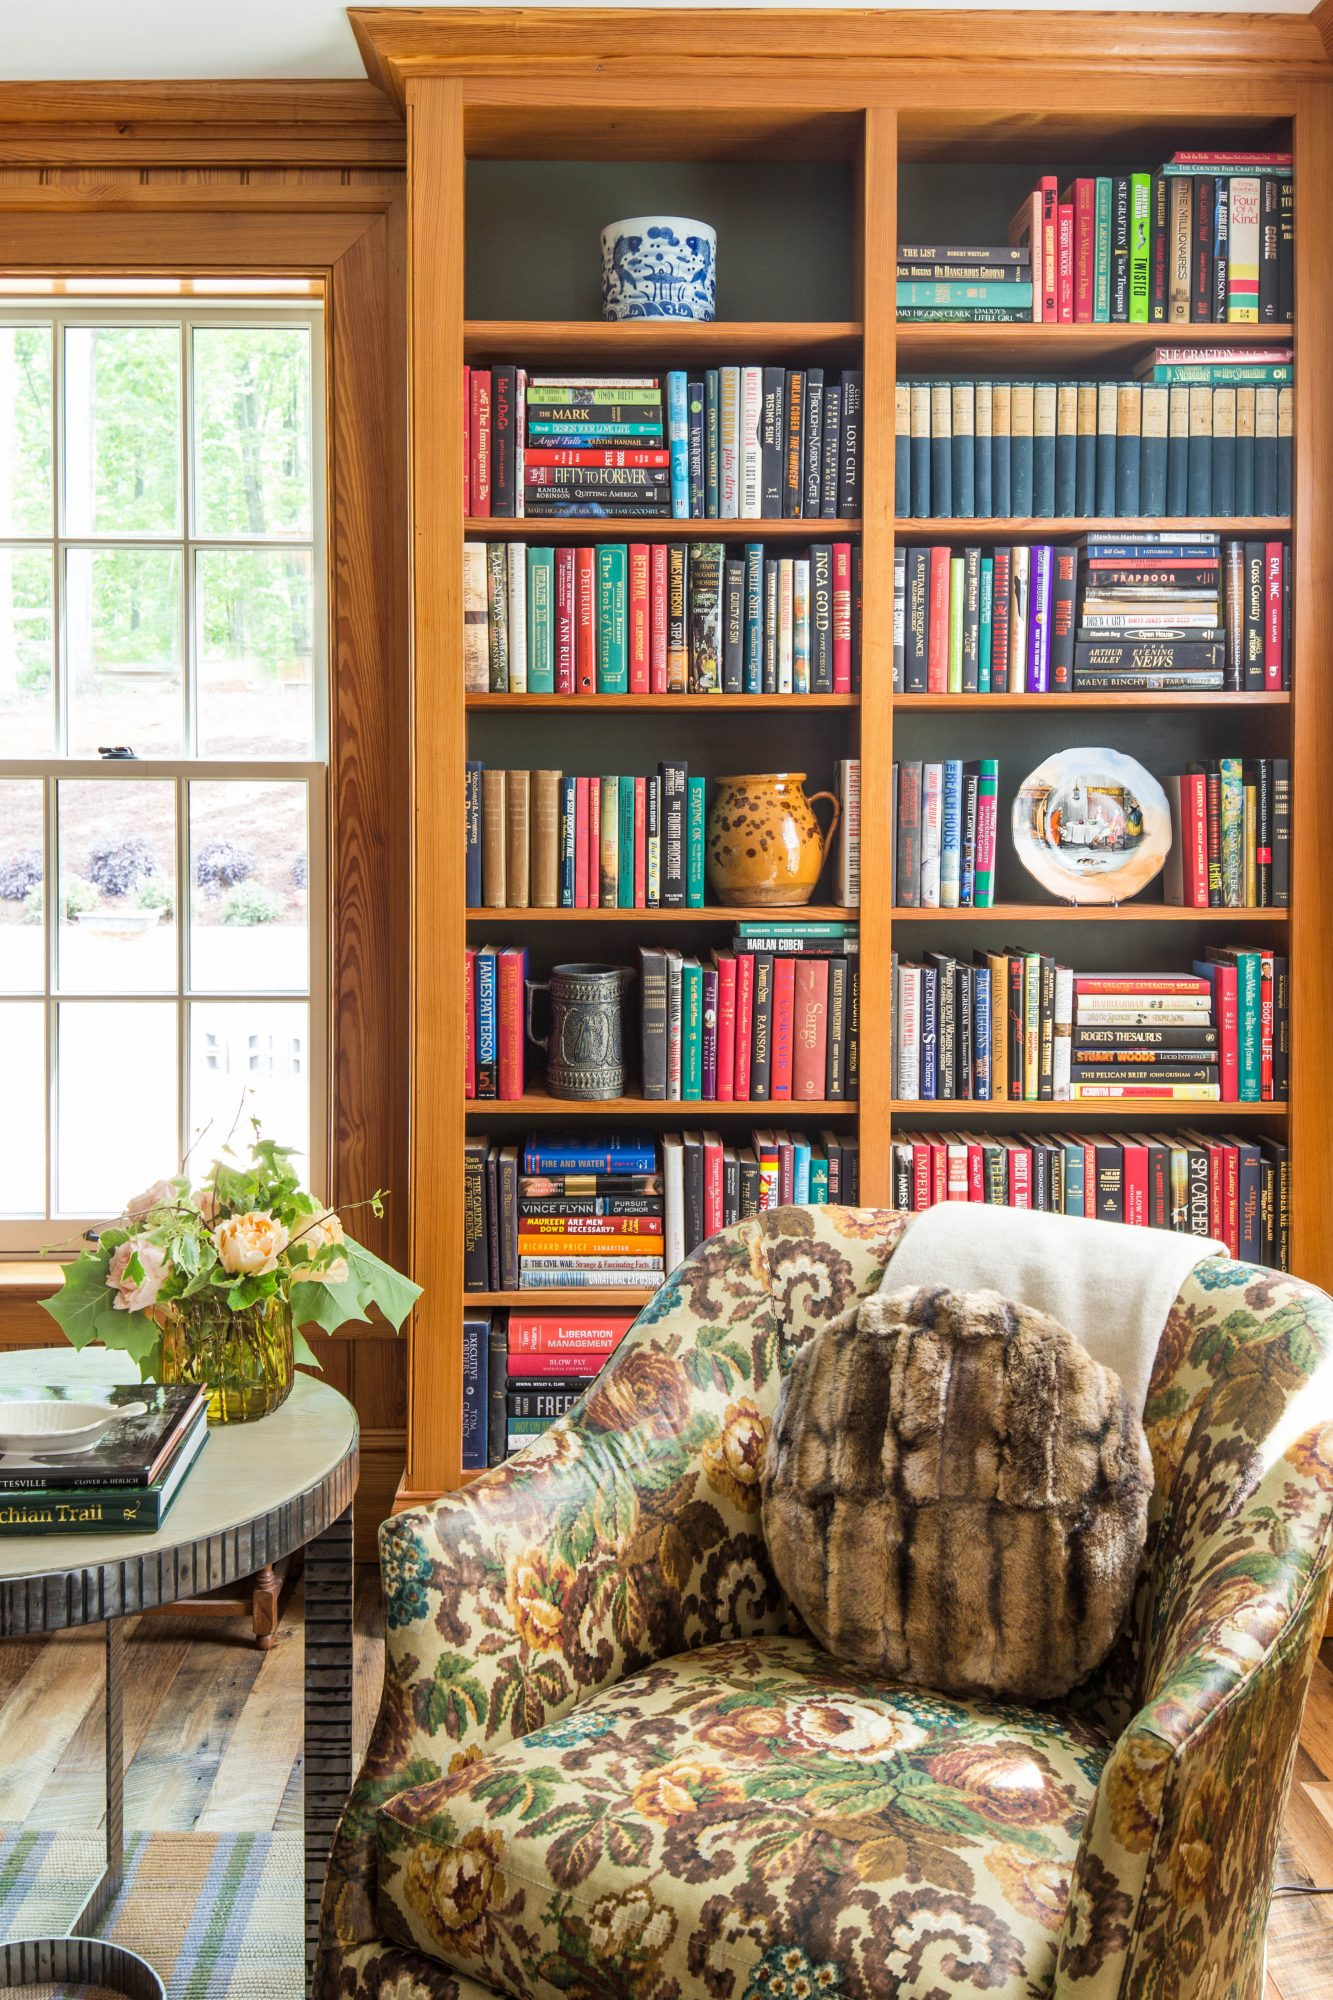 Biggest Decorating Don'ts: Hiding Your Personality